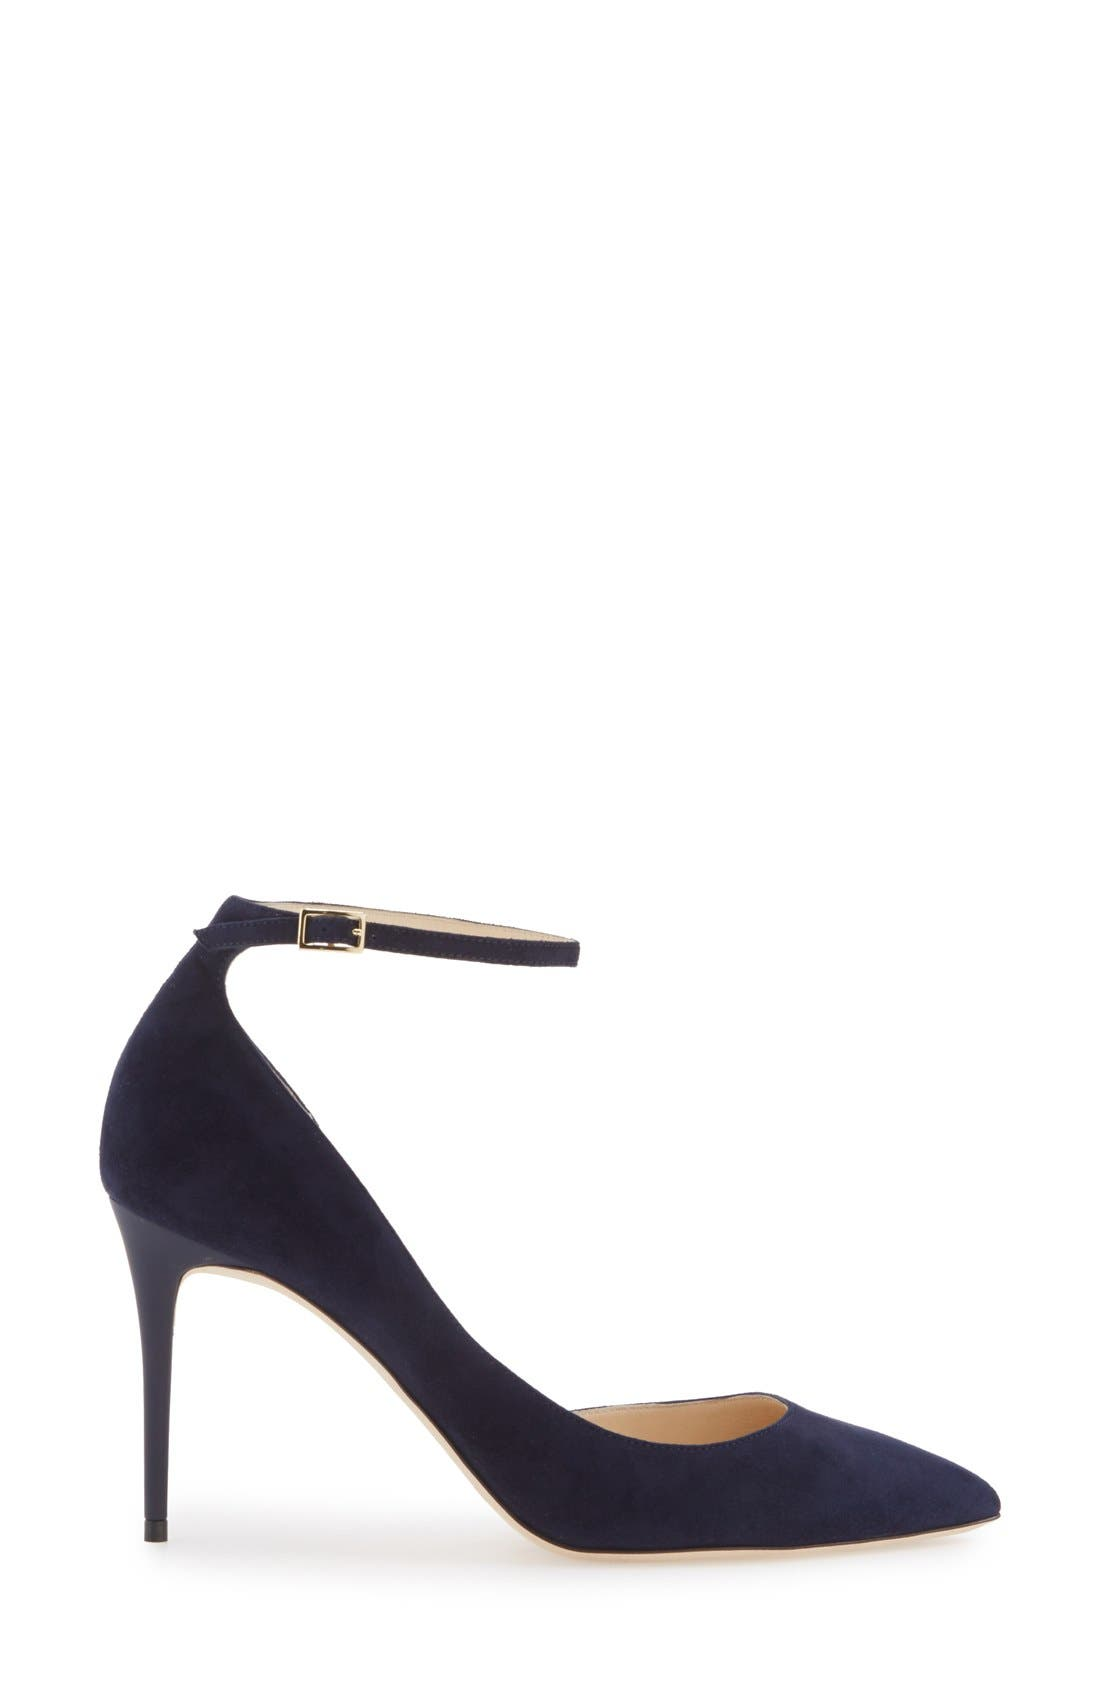 'Lucy' Half d'Orsay Pointy Toe Pump,                             Alternate thumbnail 4, color,                             410